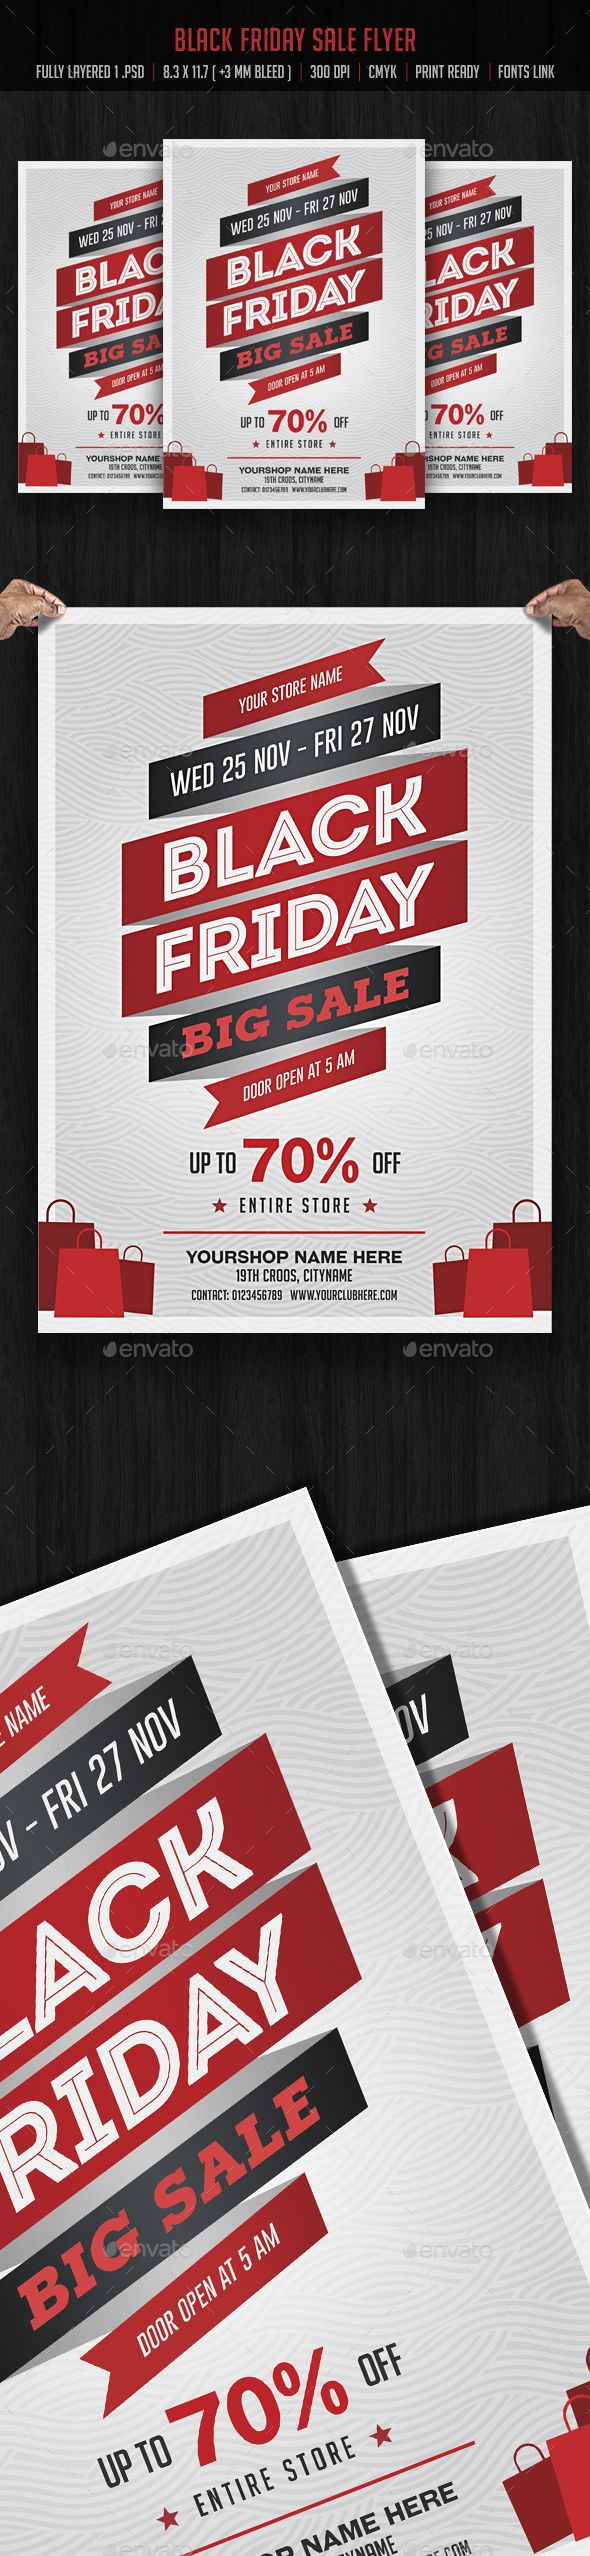 Black Friday Sale Flyer  — PSD Template #discount #deal • Download ➝ https://graphicriver.net/item/black-friday-sale-flyer/18155763?ref=pxcr